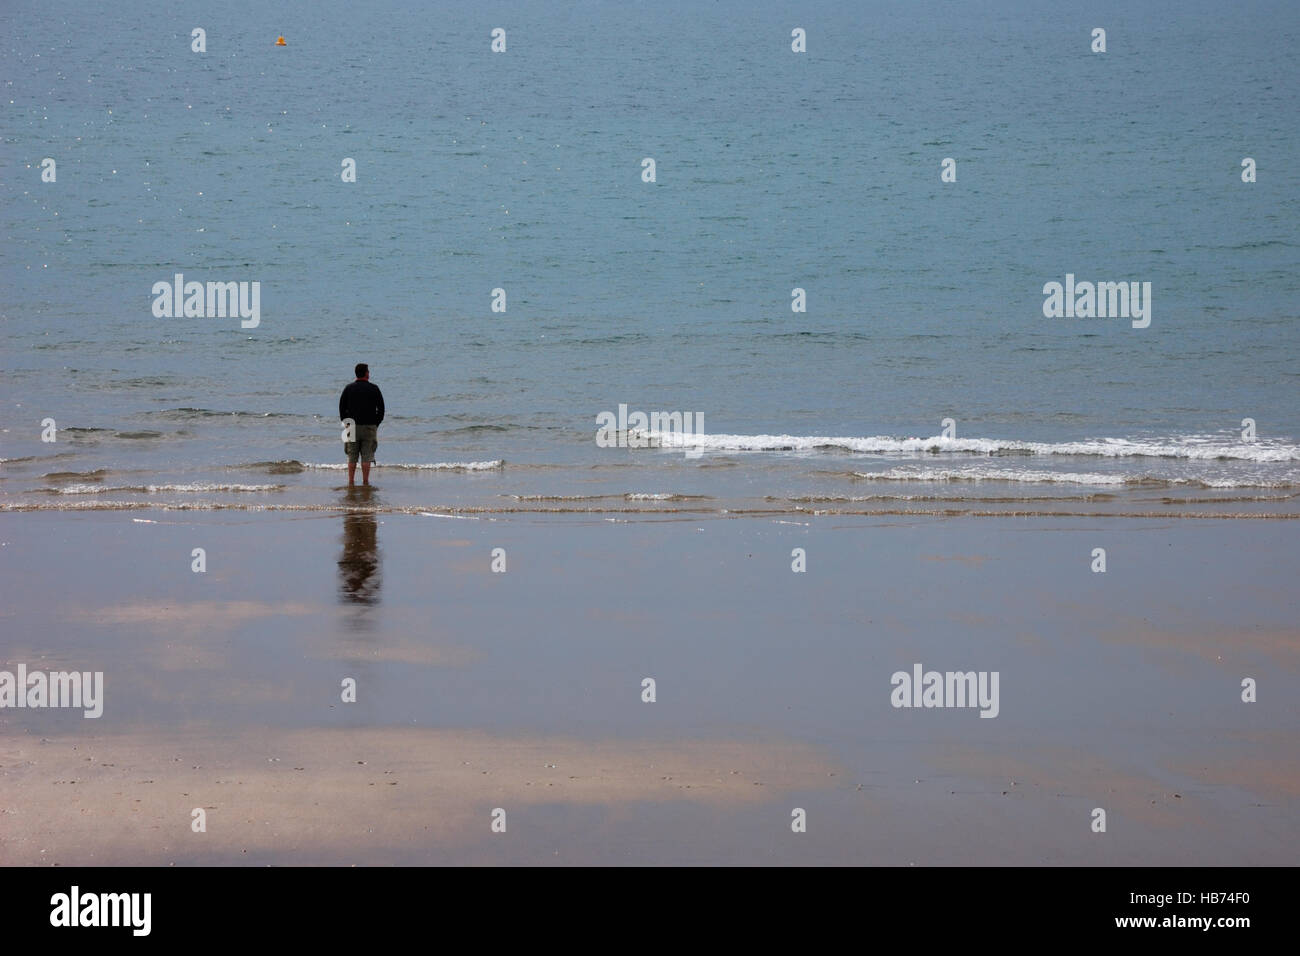 Solitary man wearing shorts standing on the edge of a beach looking out to sea Stock Photo